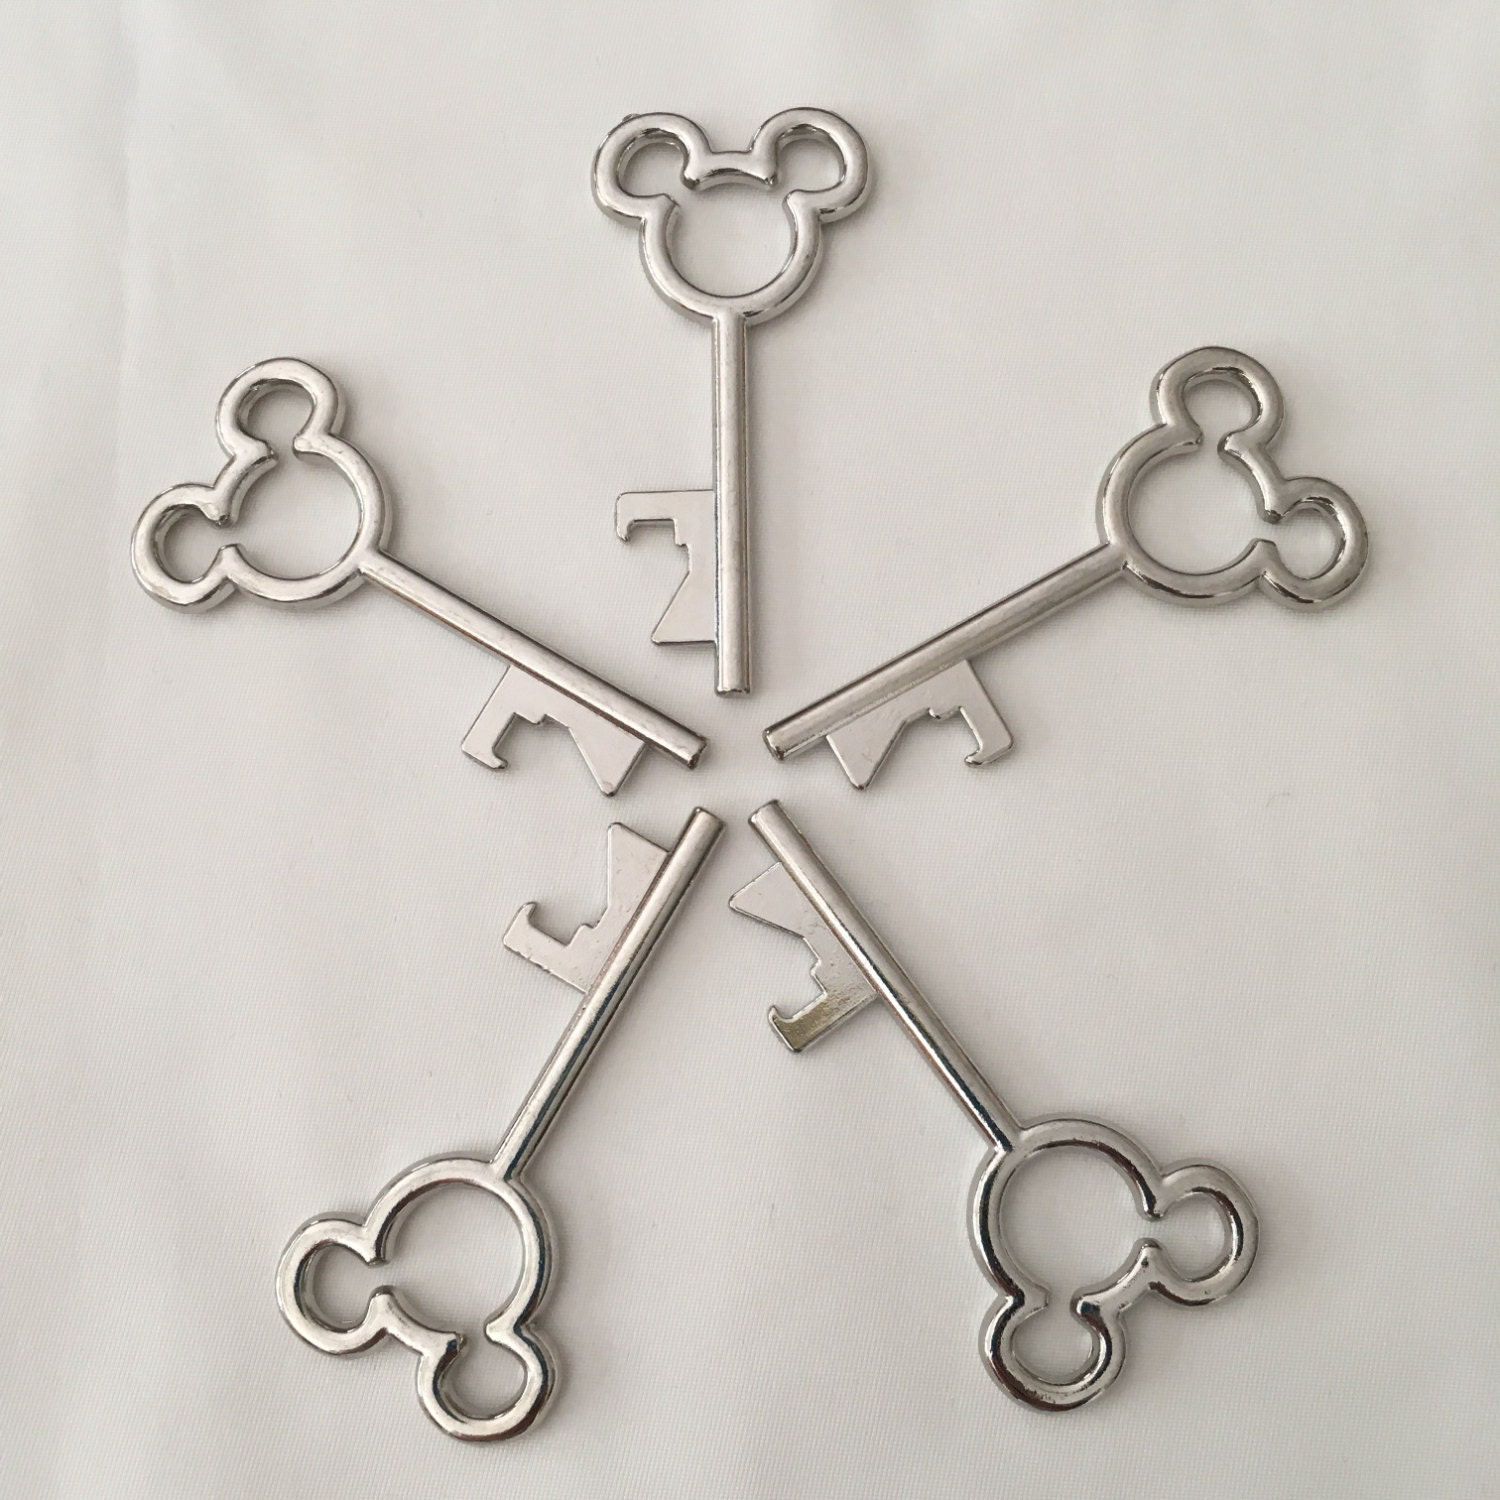 Set of 5 Mickey Mouse Skeleton Key Bottle Openers FE Gifts